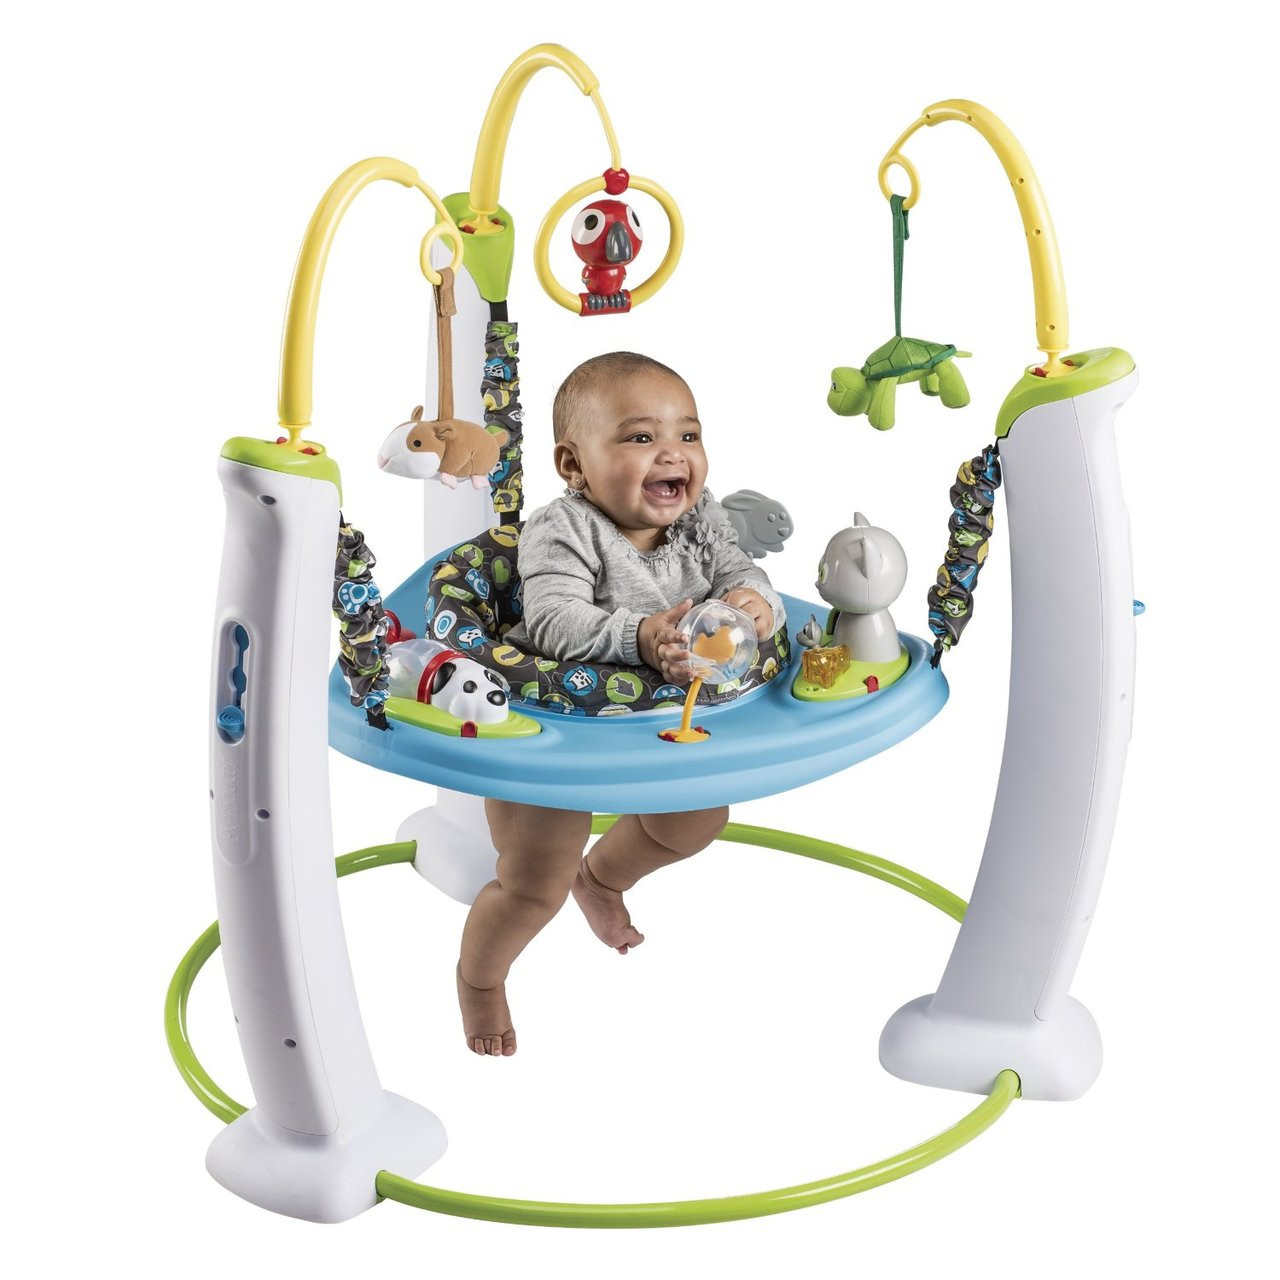 46d0d0477 Evenflo Exersaucer Jump and Learn Stationary Jumper